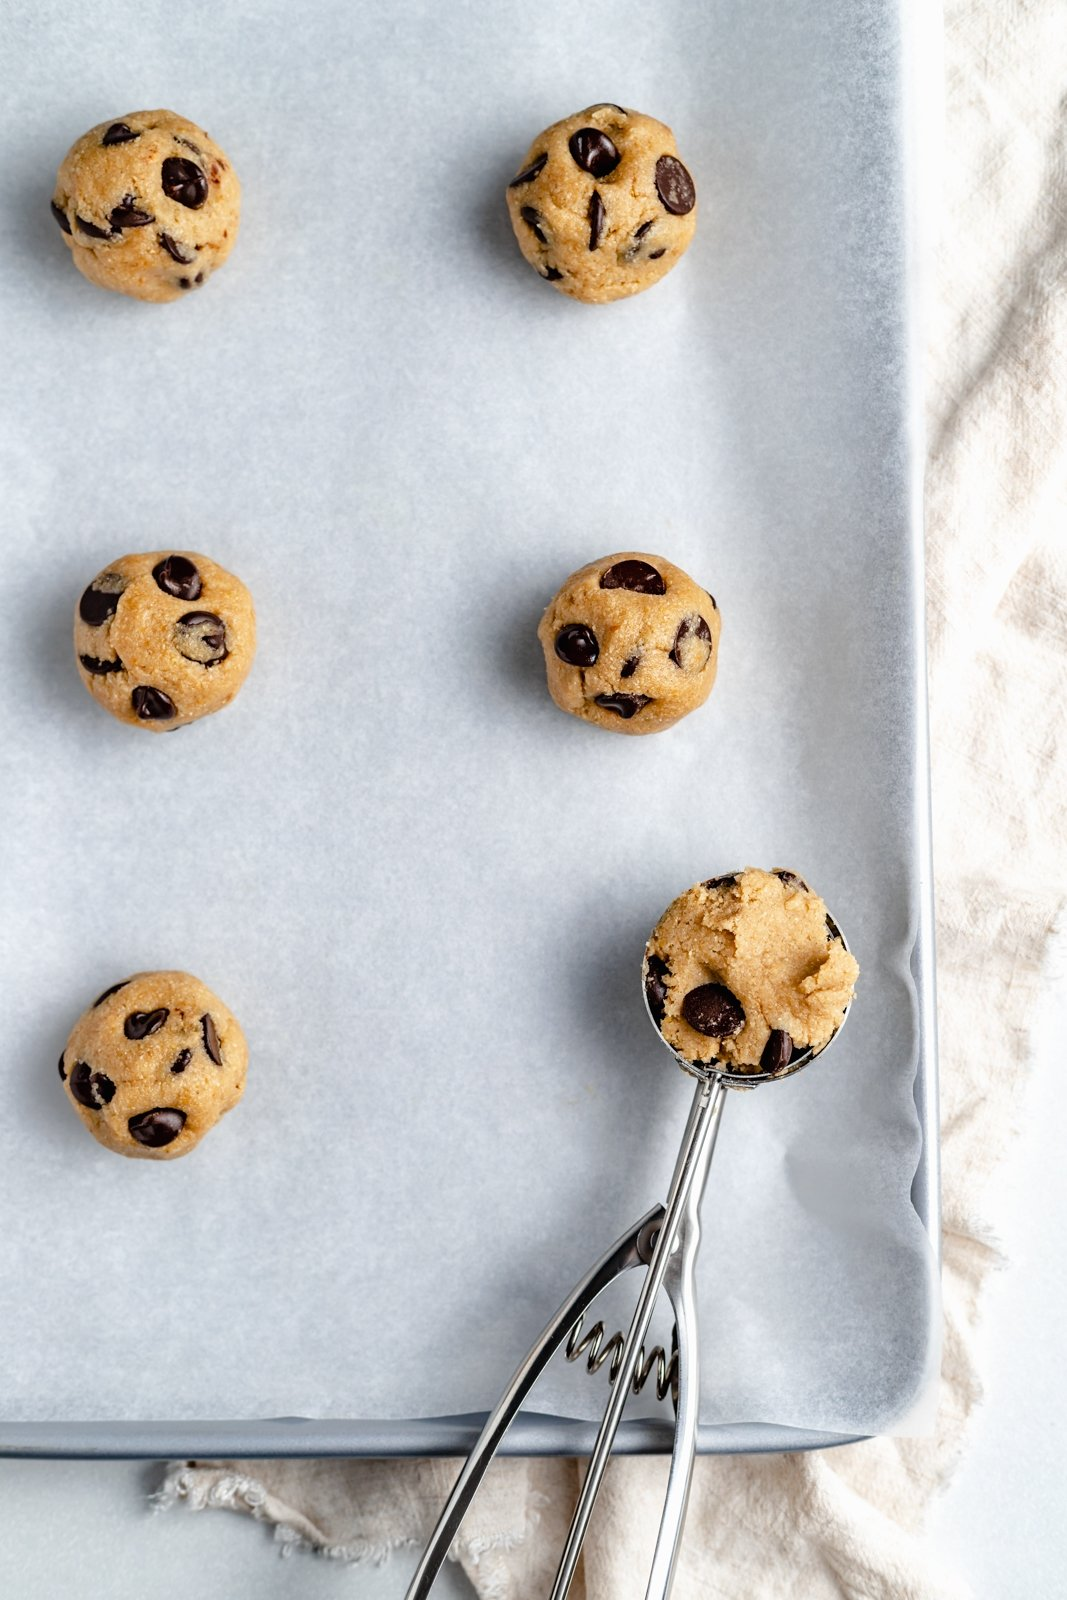 unbaked vegan and gluten free chocolate chip cookie dough balls on a baking sheet